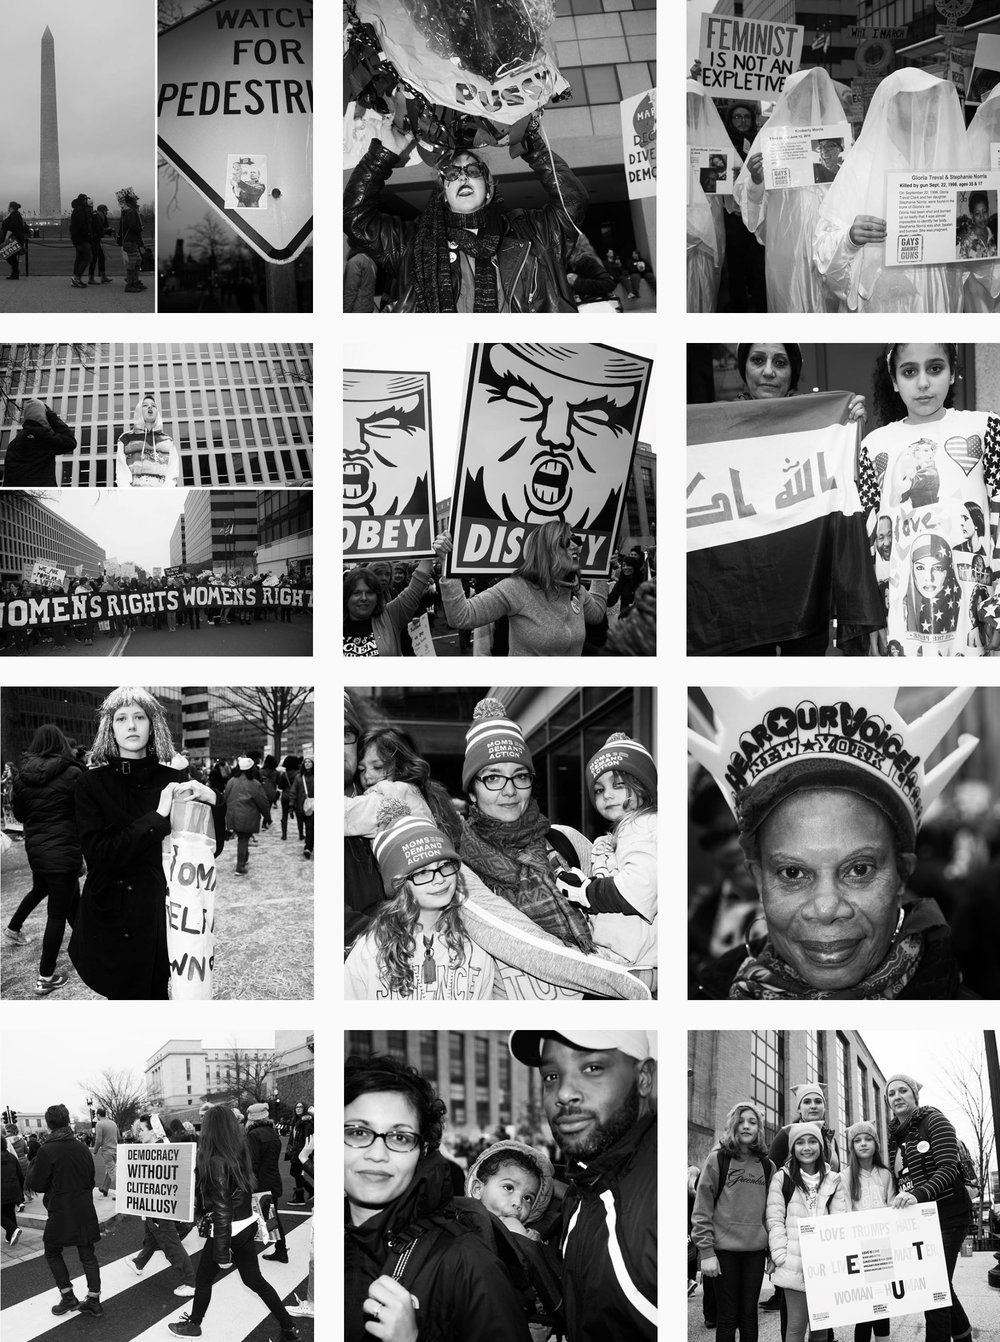 """ #WomensMarchOnWashington Live Coverage .""   Photos & Reporting:   Lili Holzer-Glier   Role:  Assignment, Instagram and website coordinator, sequence, text."